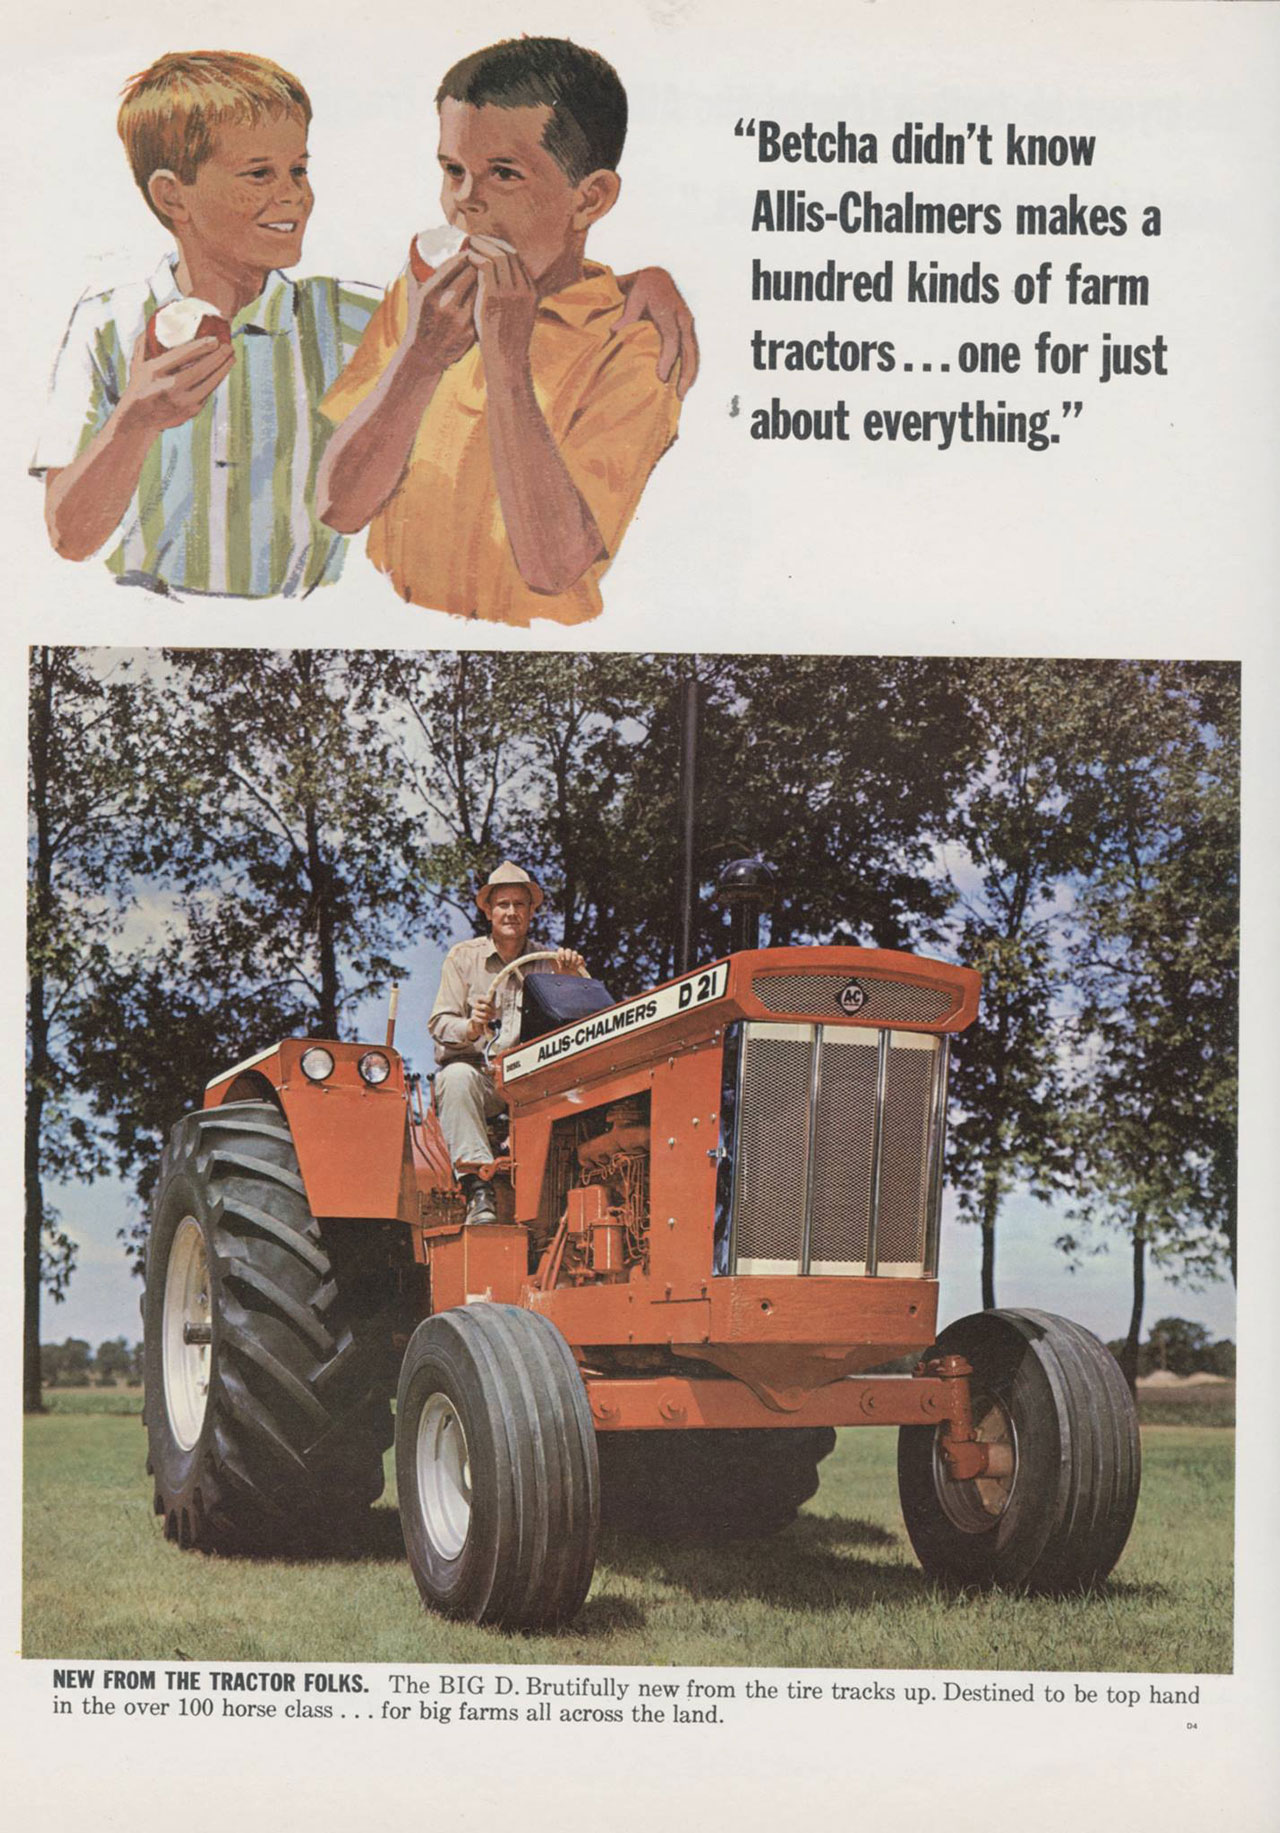 'Betcha didn't know Allis-Chalmers makes a hundred kinds of farm tractors ... one for just about everything.' NEW FROM THE TRACTOR FOLKS. The BIG D. Brutifully new from the tire tracks up. Destined to be top hand in the over 100 horse class . . . for big farms all across the land.